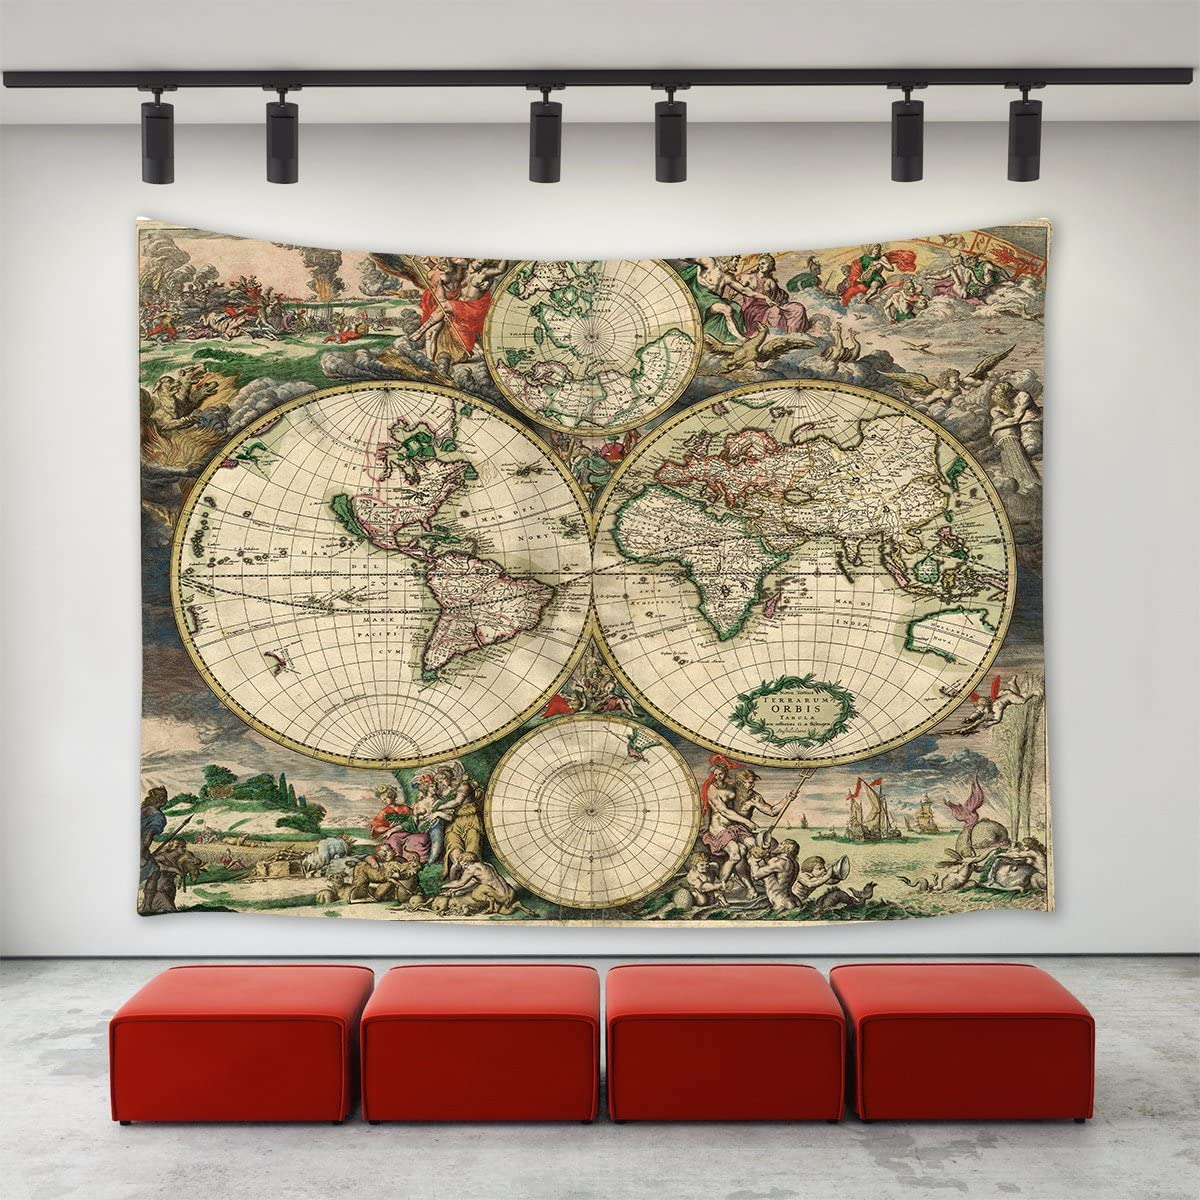 LBKT Historical Atlas Decor Tapestry Wall Hanging, Ancient Old World Map 1689 Wall Tapestry Home Decoration Wall Decor Art Tapestries for Bedroom Living Room Dorm Decor 80